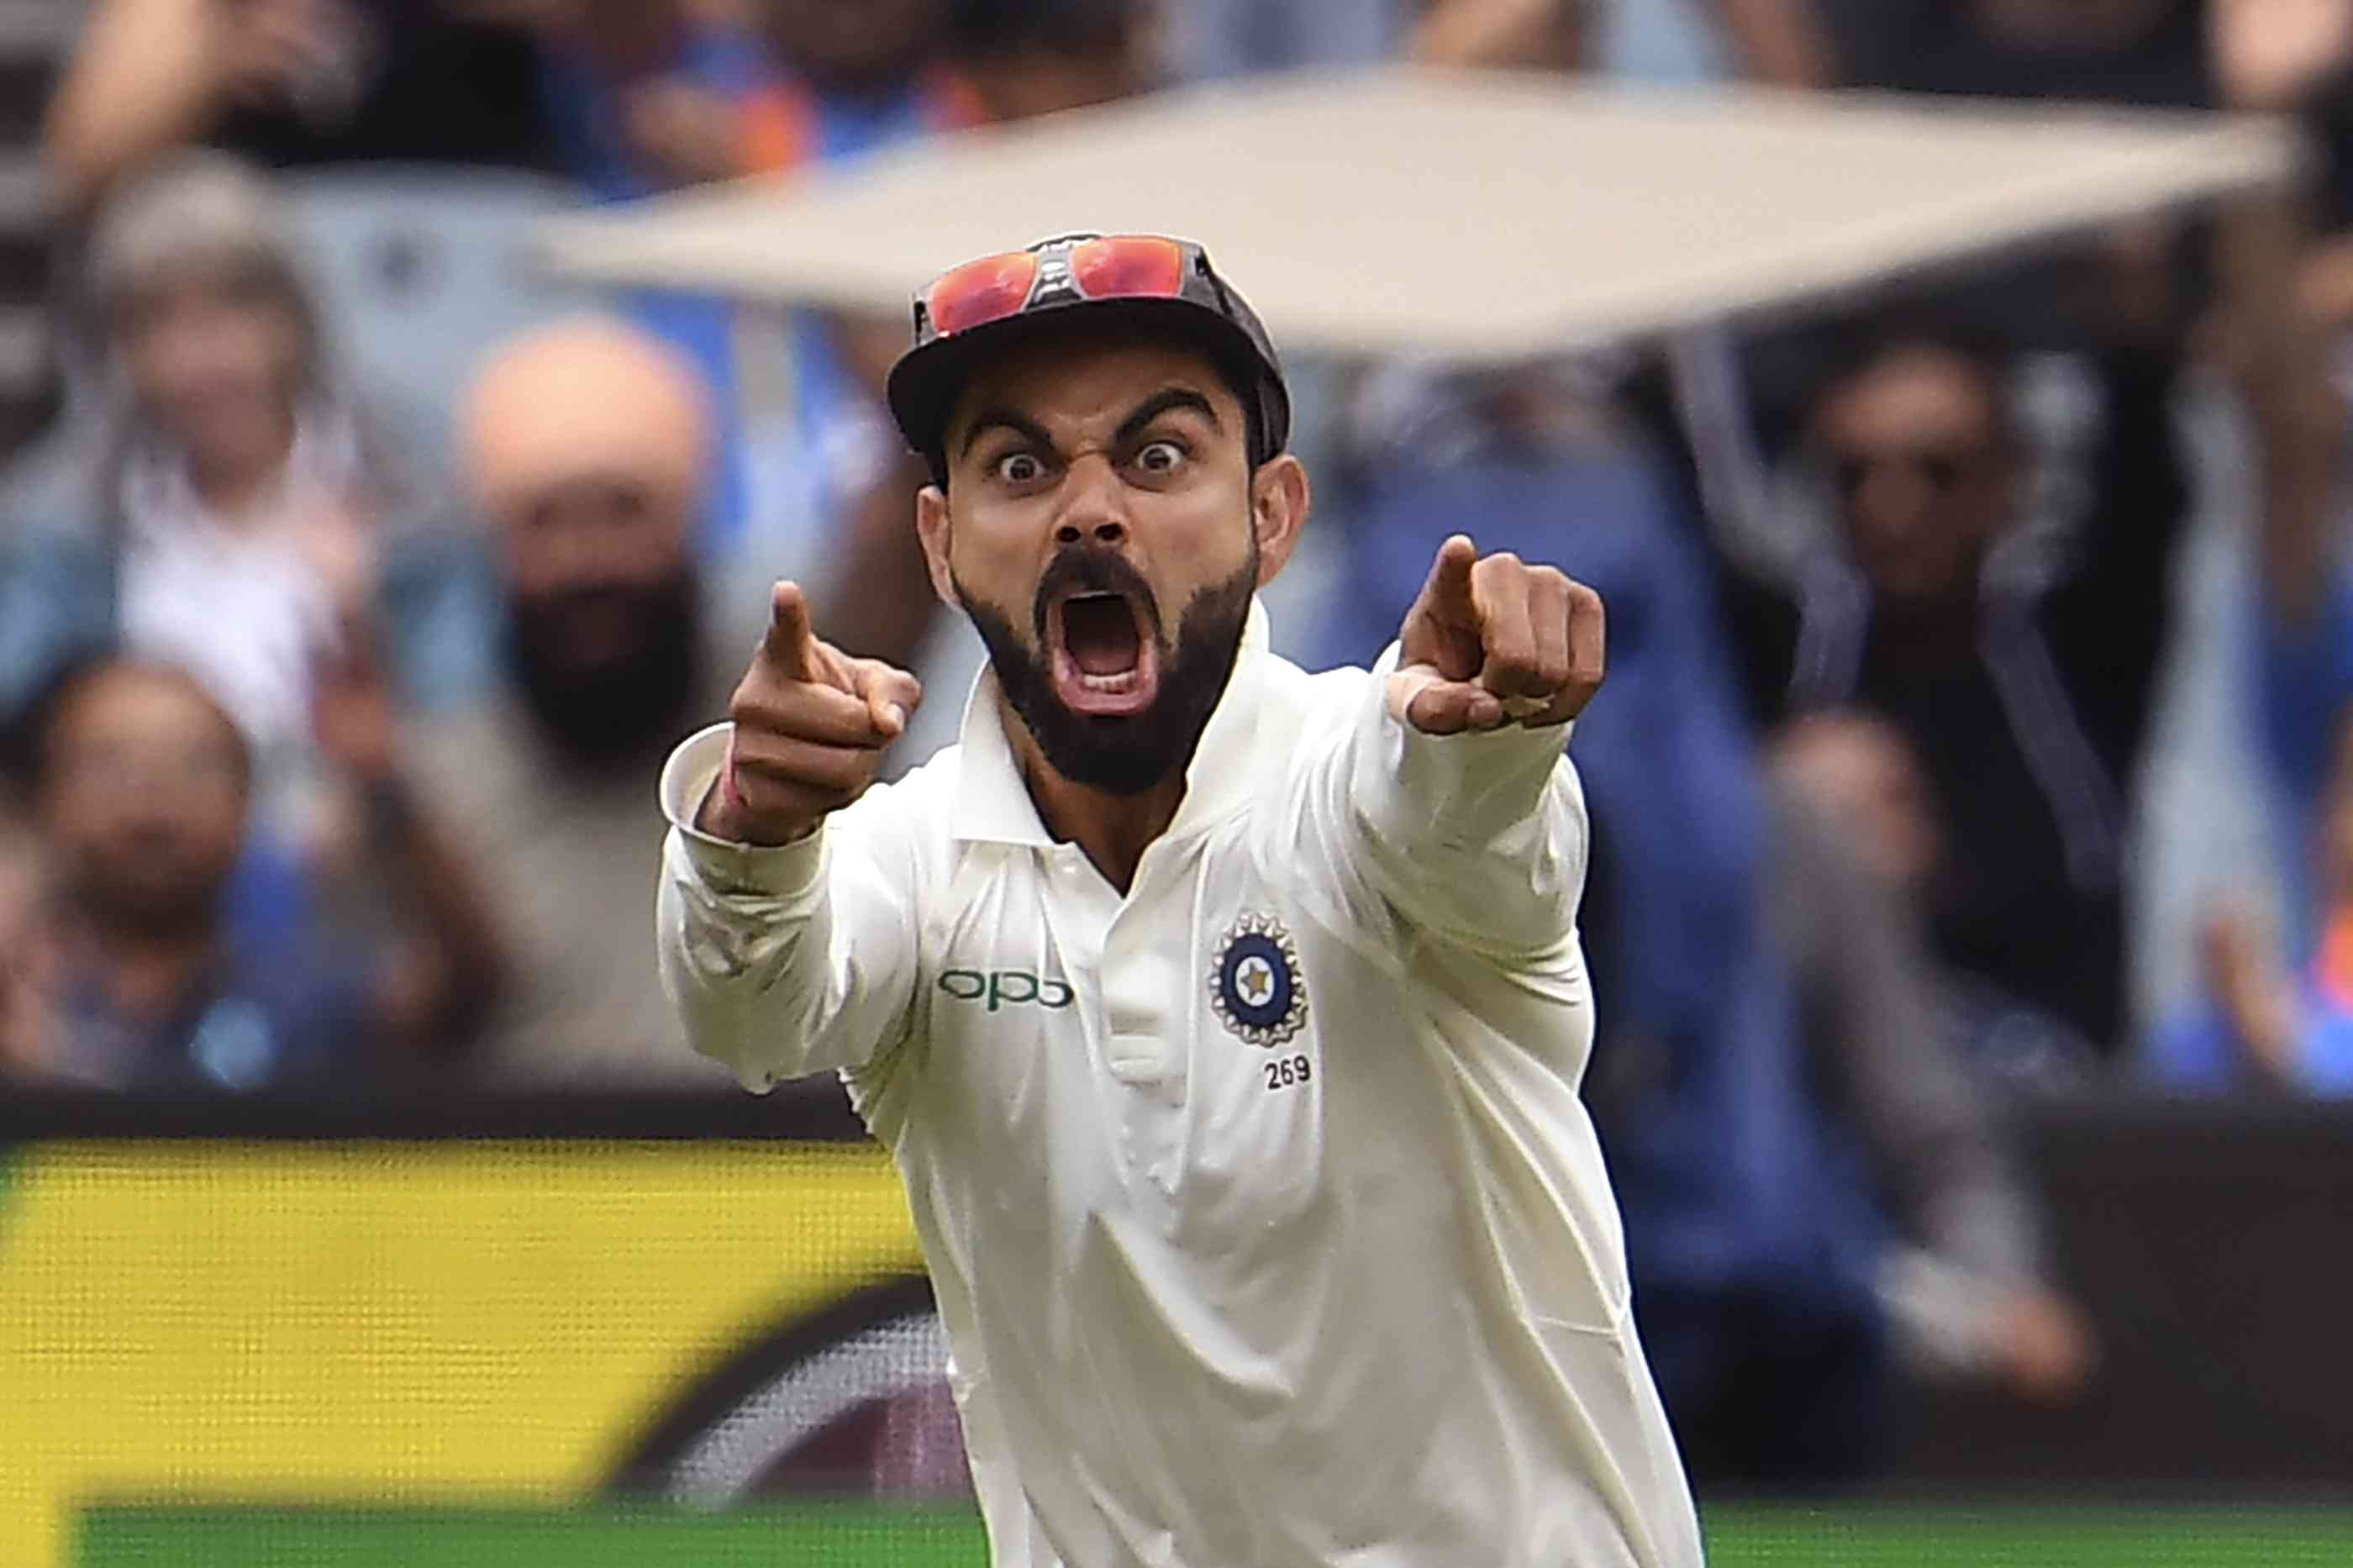 India captain Virat Kohli reacts during the Test series against Australia, where the visitors have taken a 2-1 lead going into the final match (AFP)